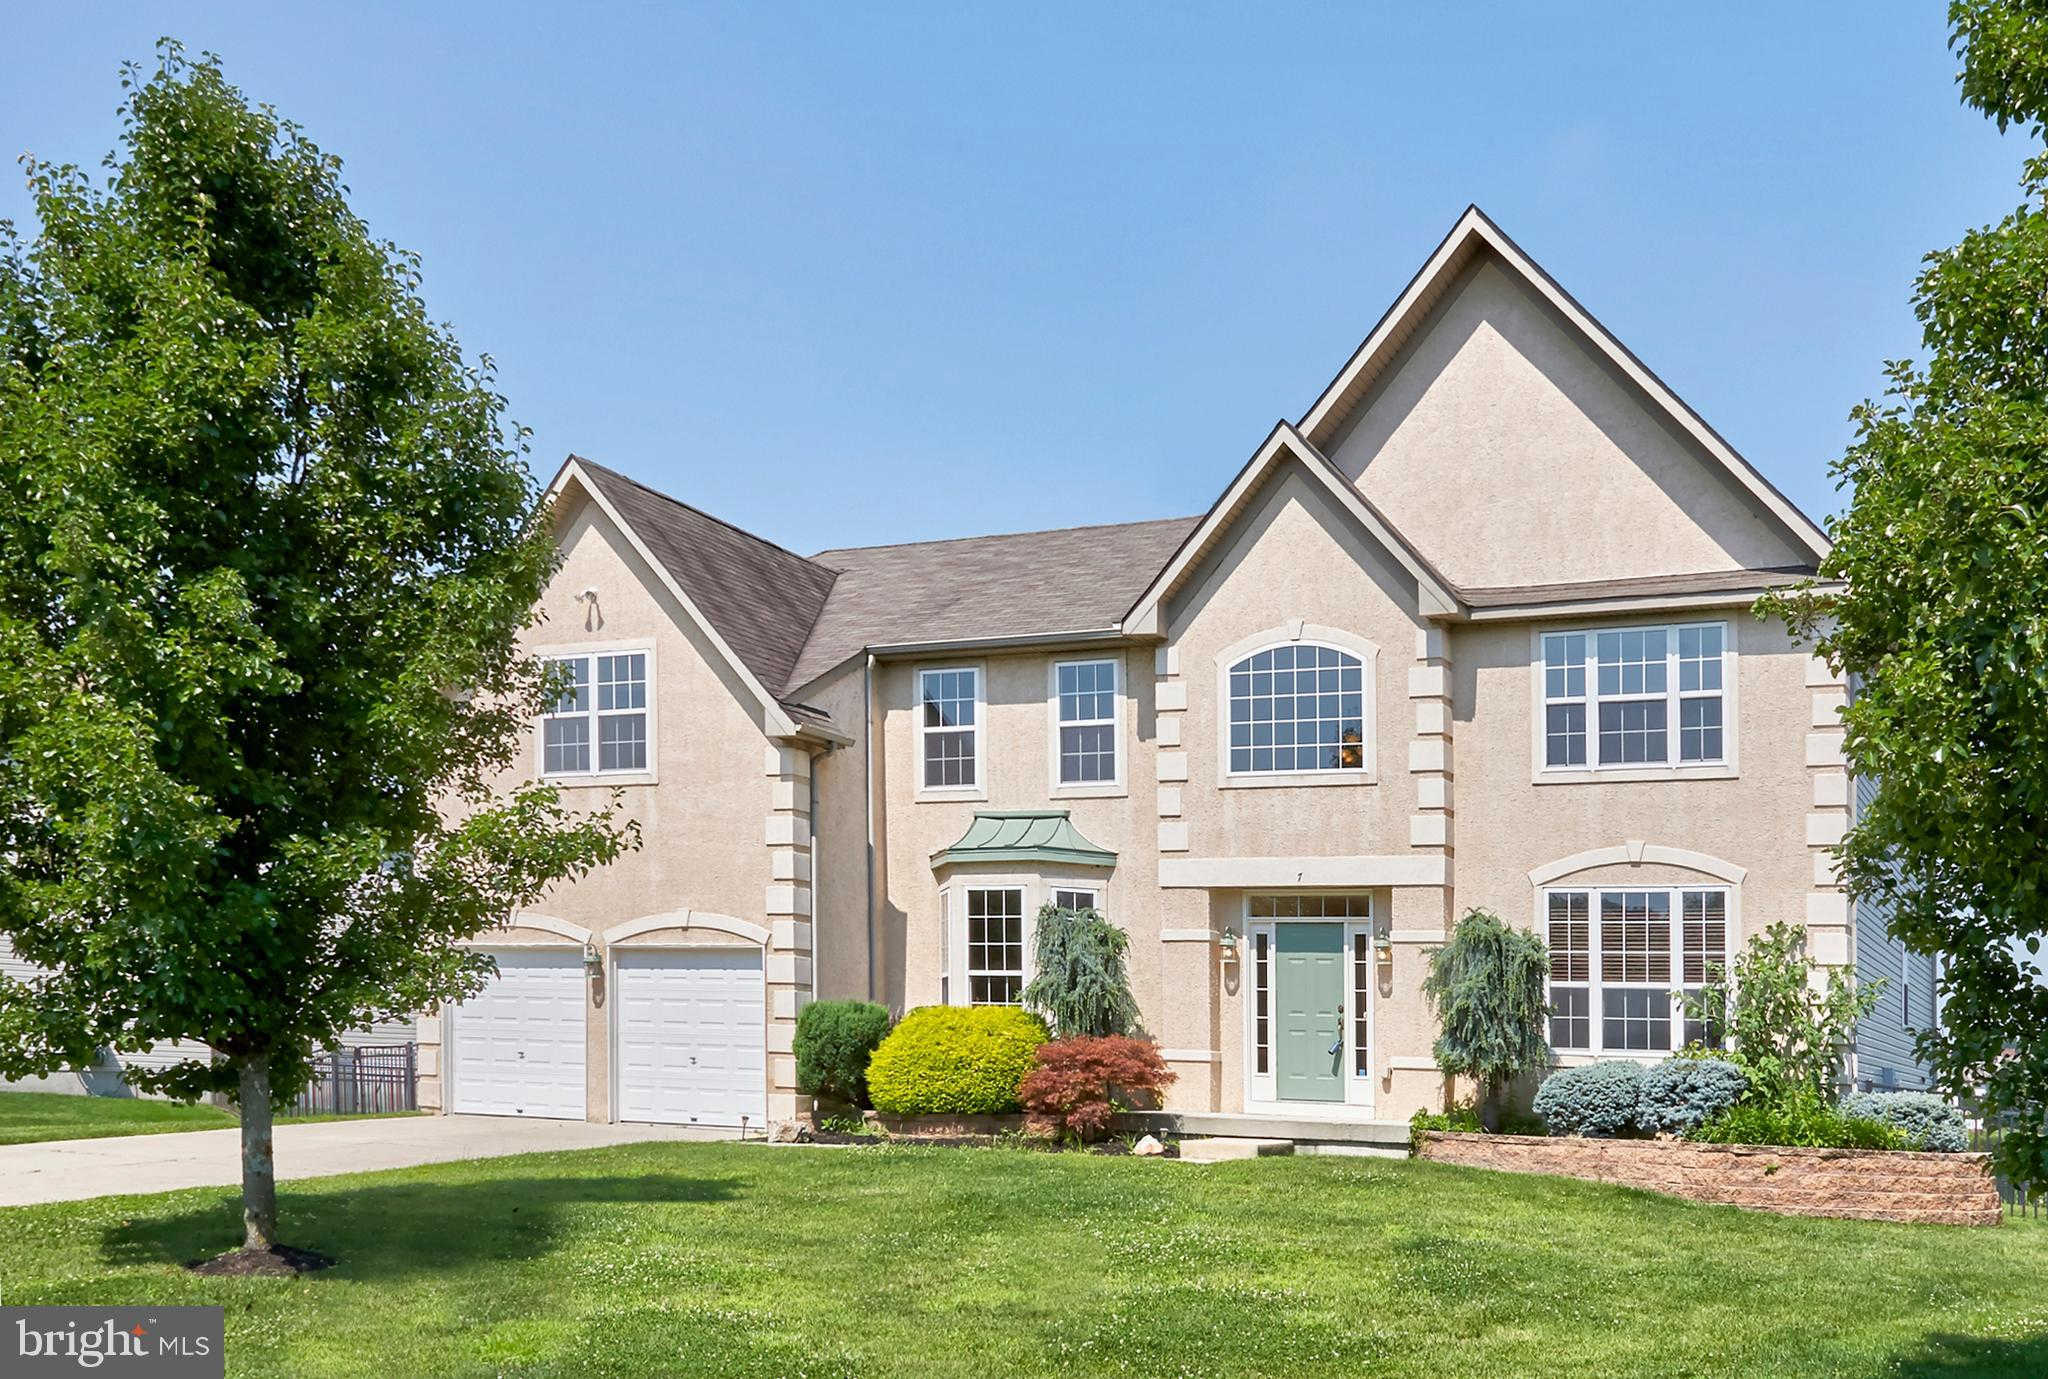 7 Tidewater Court, Hainesport, NJ 08036 now has a new price of $495,000!